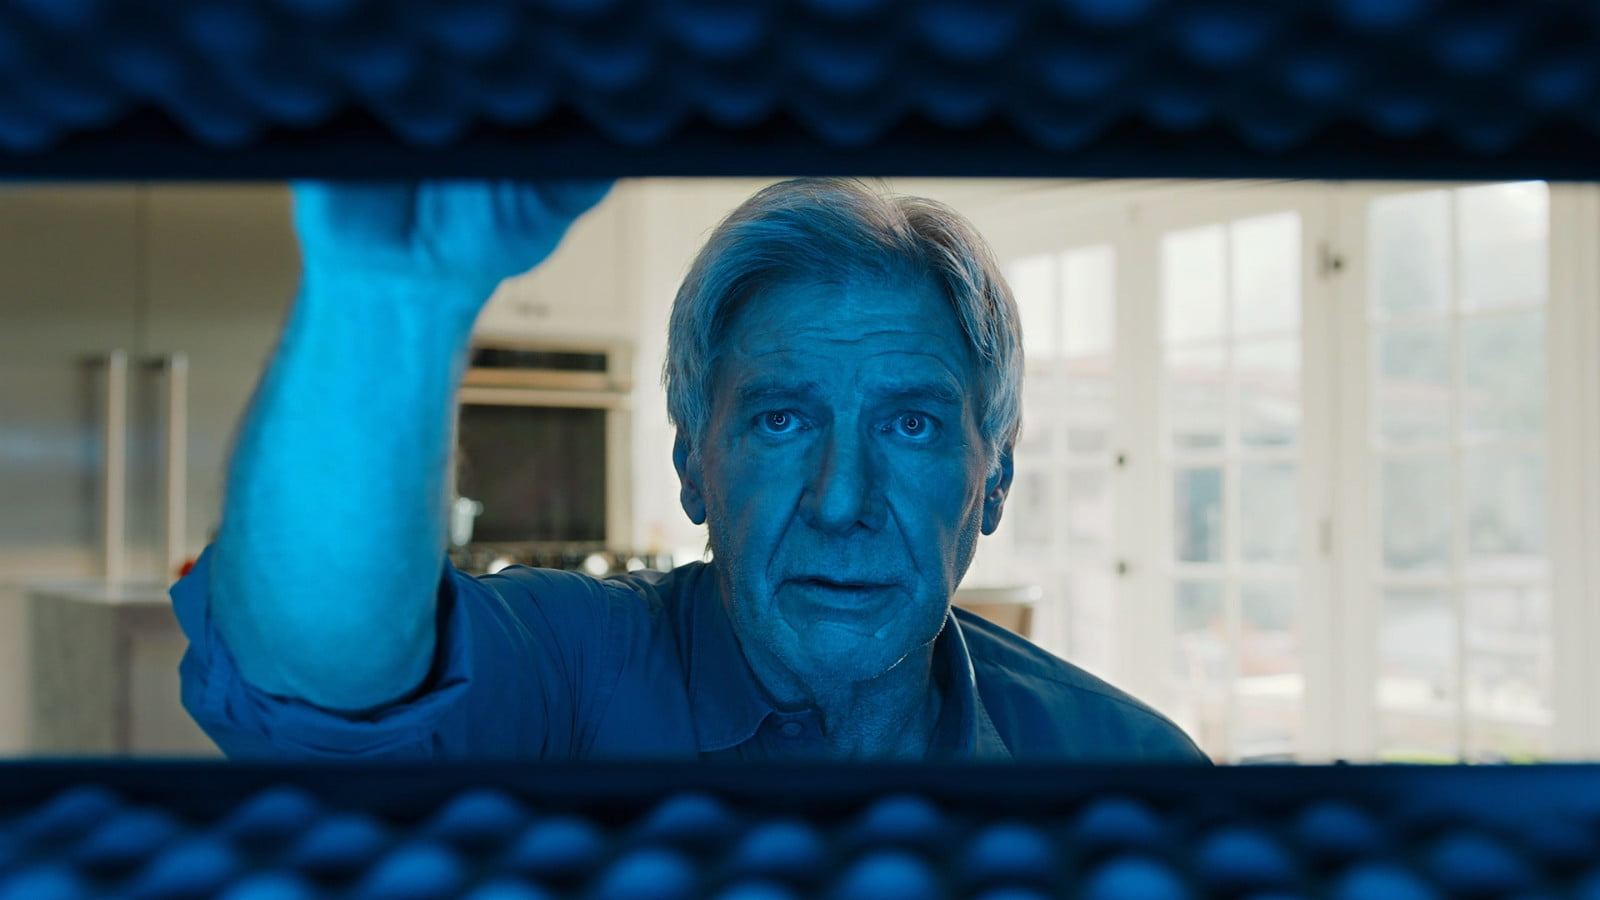 Amazon Teases Super Bowl Commercials with Harrison Ford